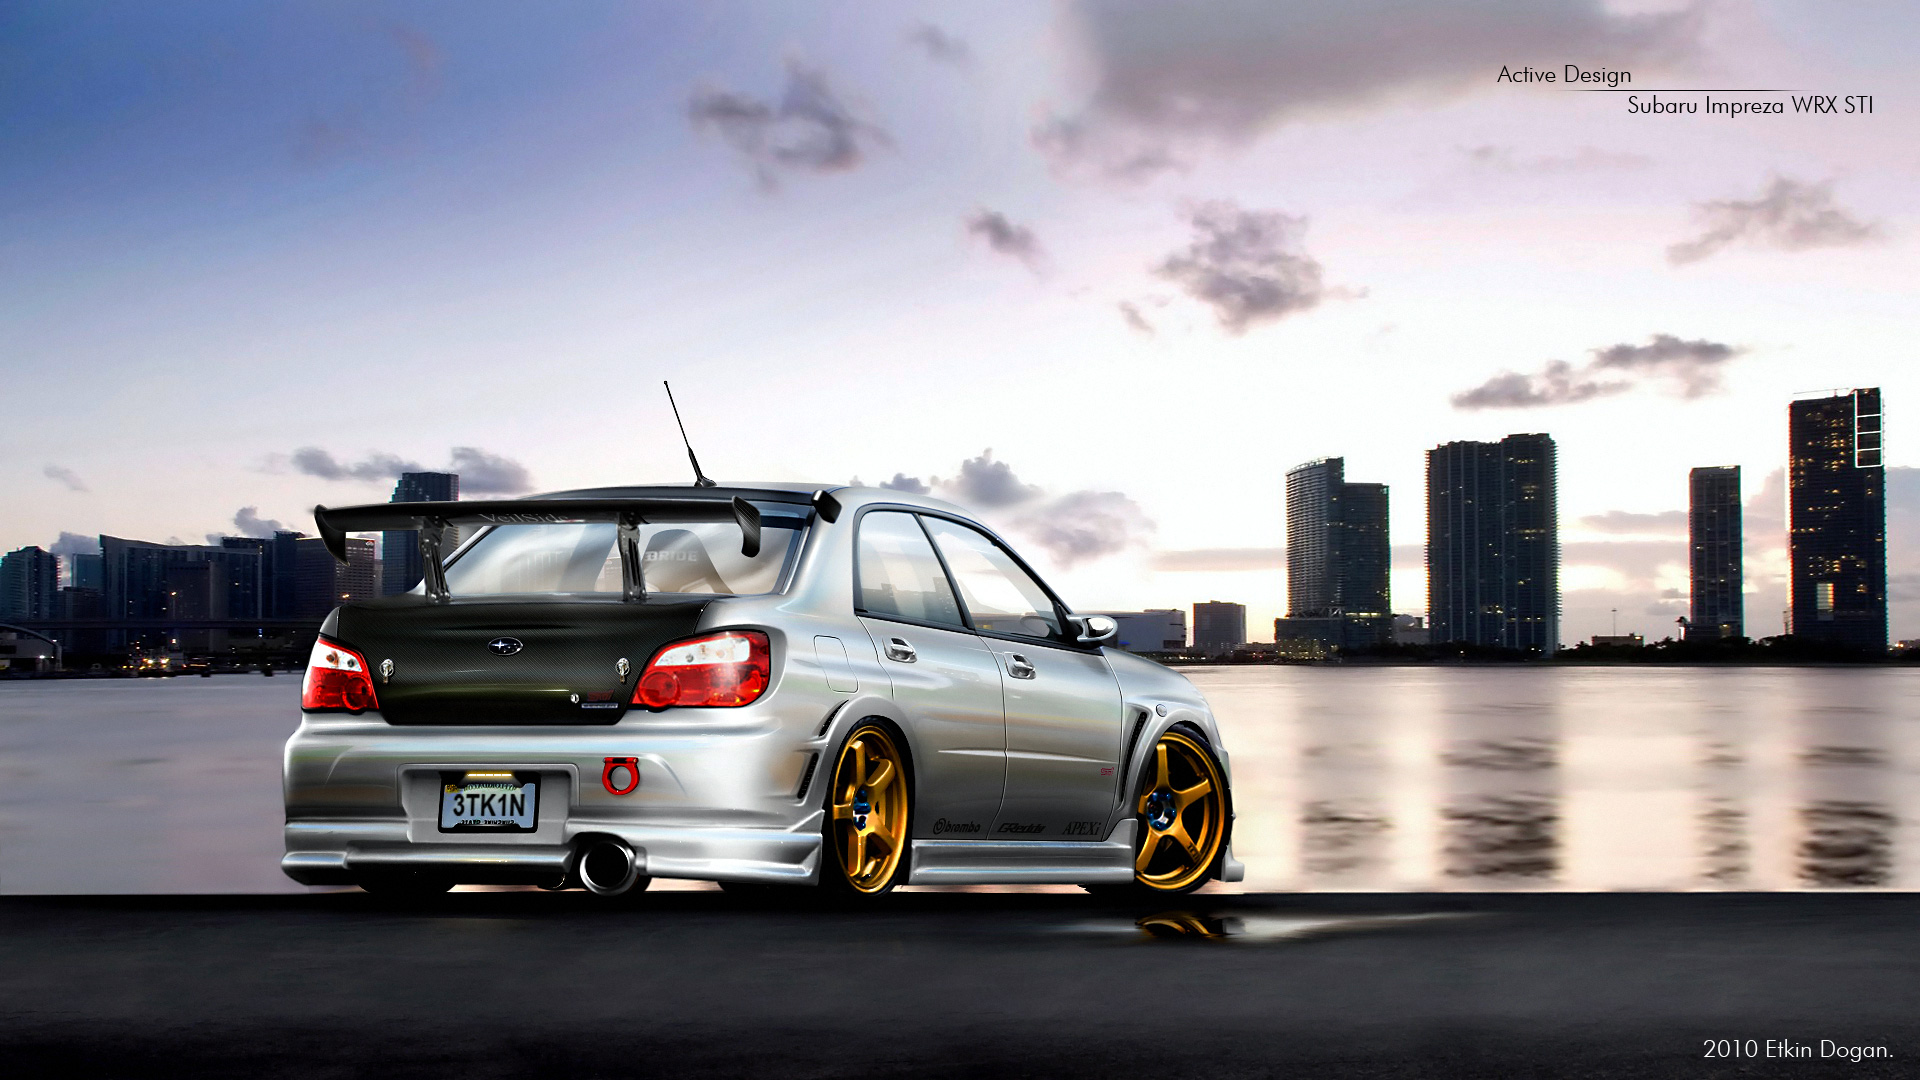 Subaru Impreza WRX STI 2 by Active-Design